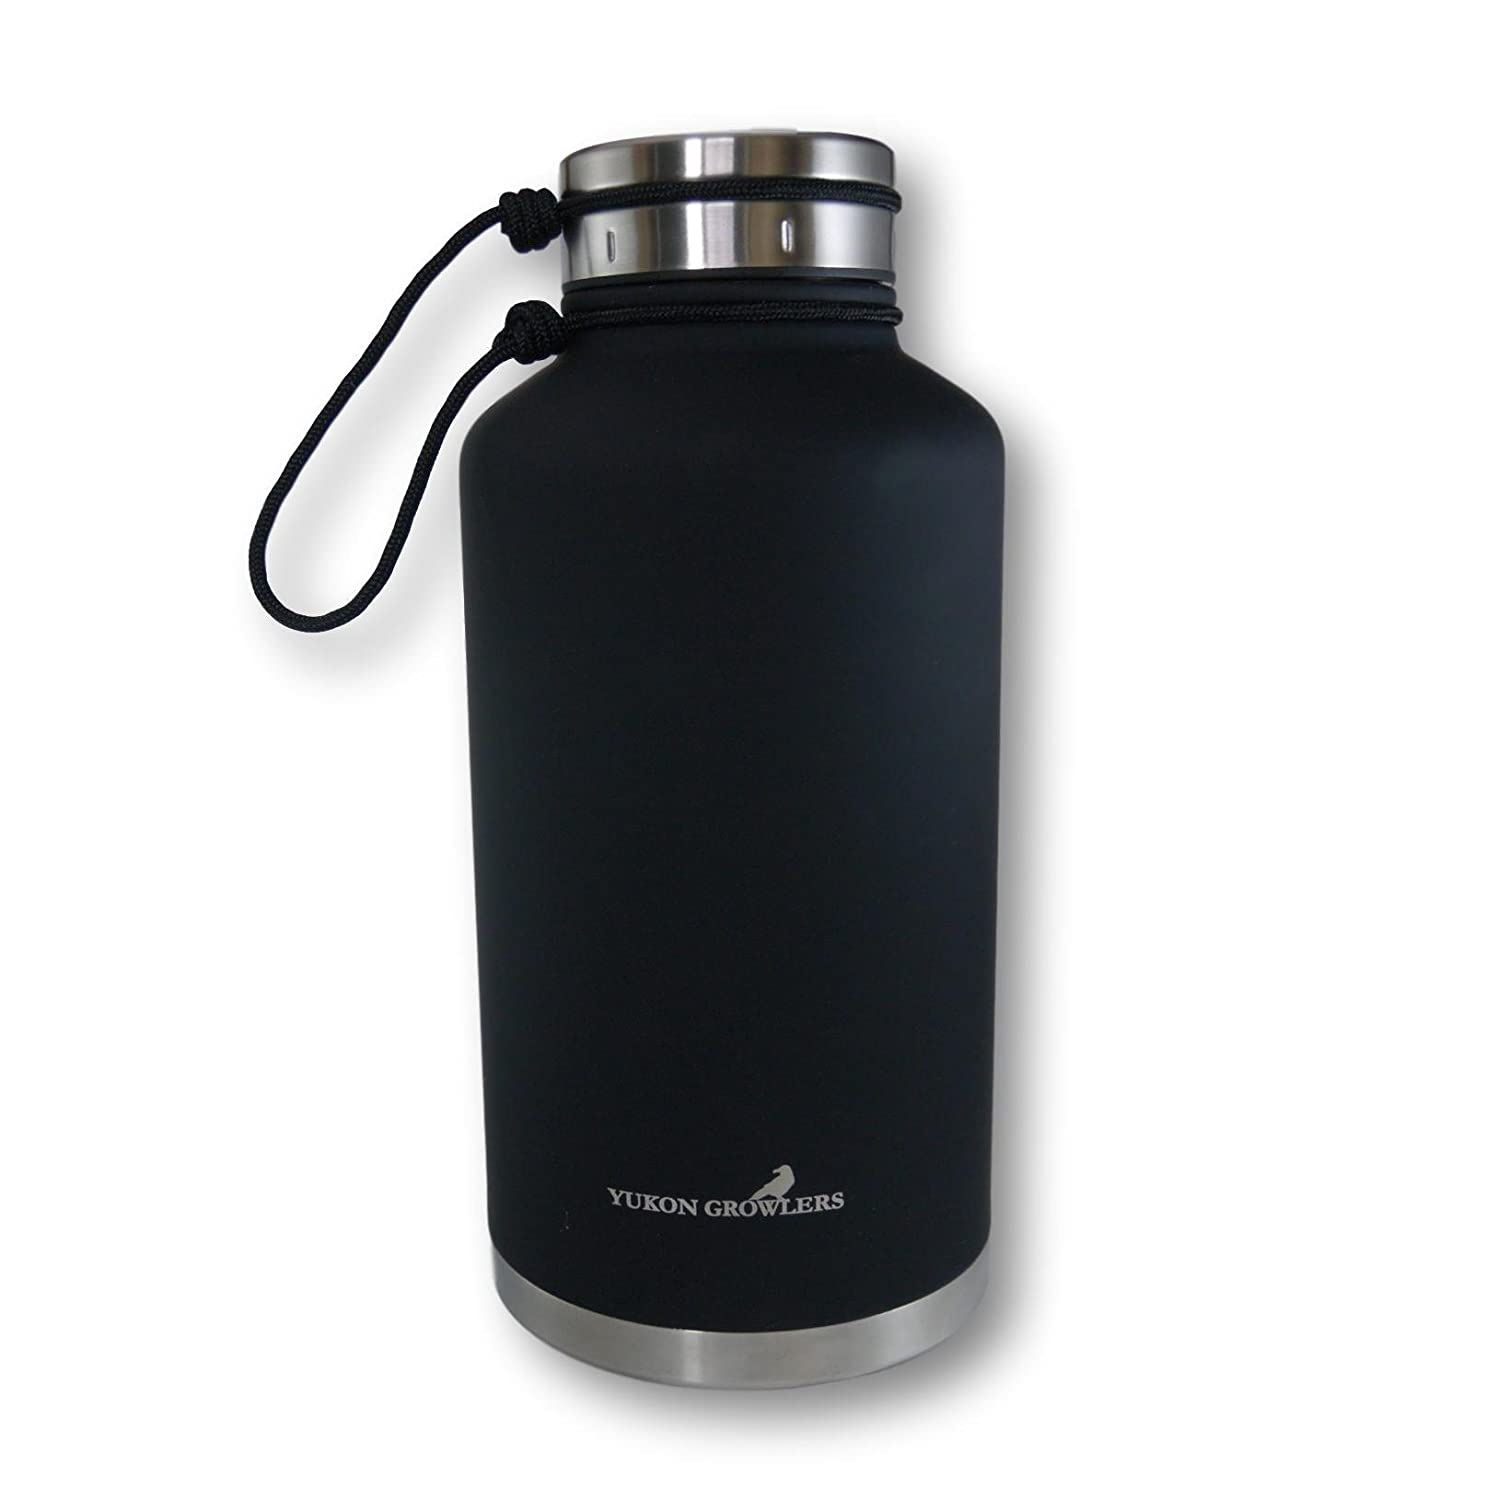 Also Keeps Coffee Hot Yukon Growlers Insulated Beer Growler Improved Lid Keep Your Beer Cold and Carbonated for 24 Hours in This Stainless Steel Vacuum Water Bottle 64 oz